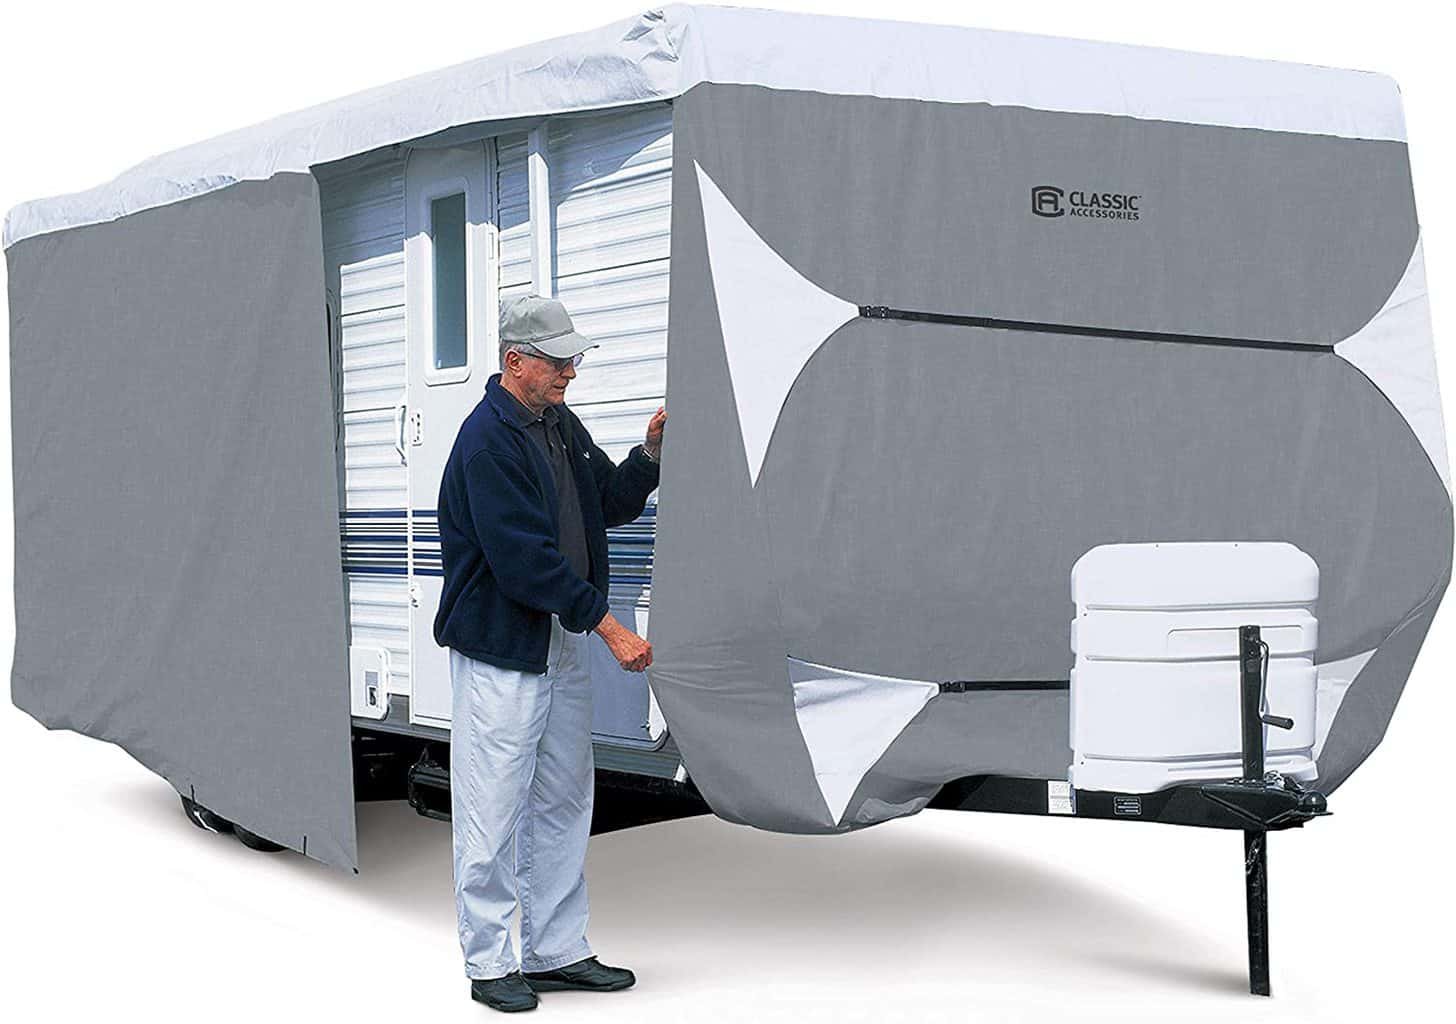 Classic Accessories 80-351-303101-RT Best Toy Hauler or Trailer Cover